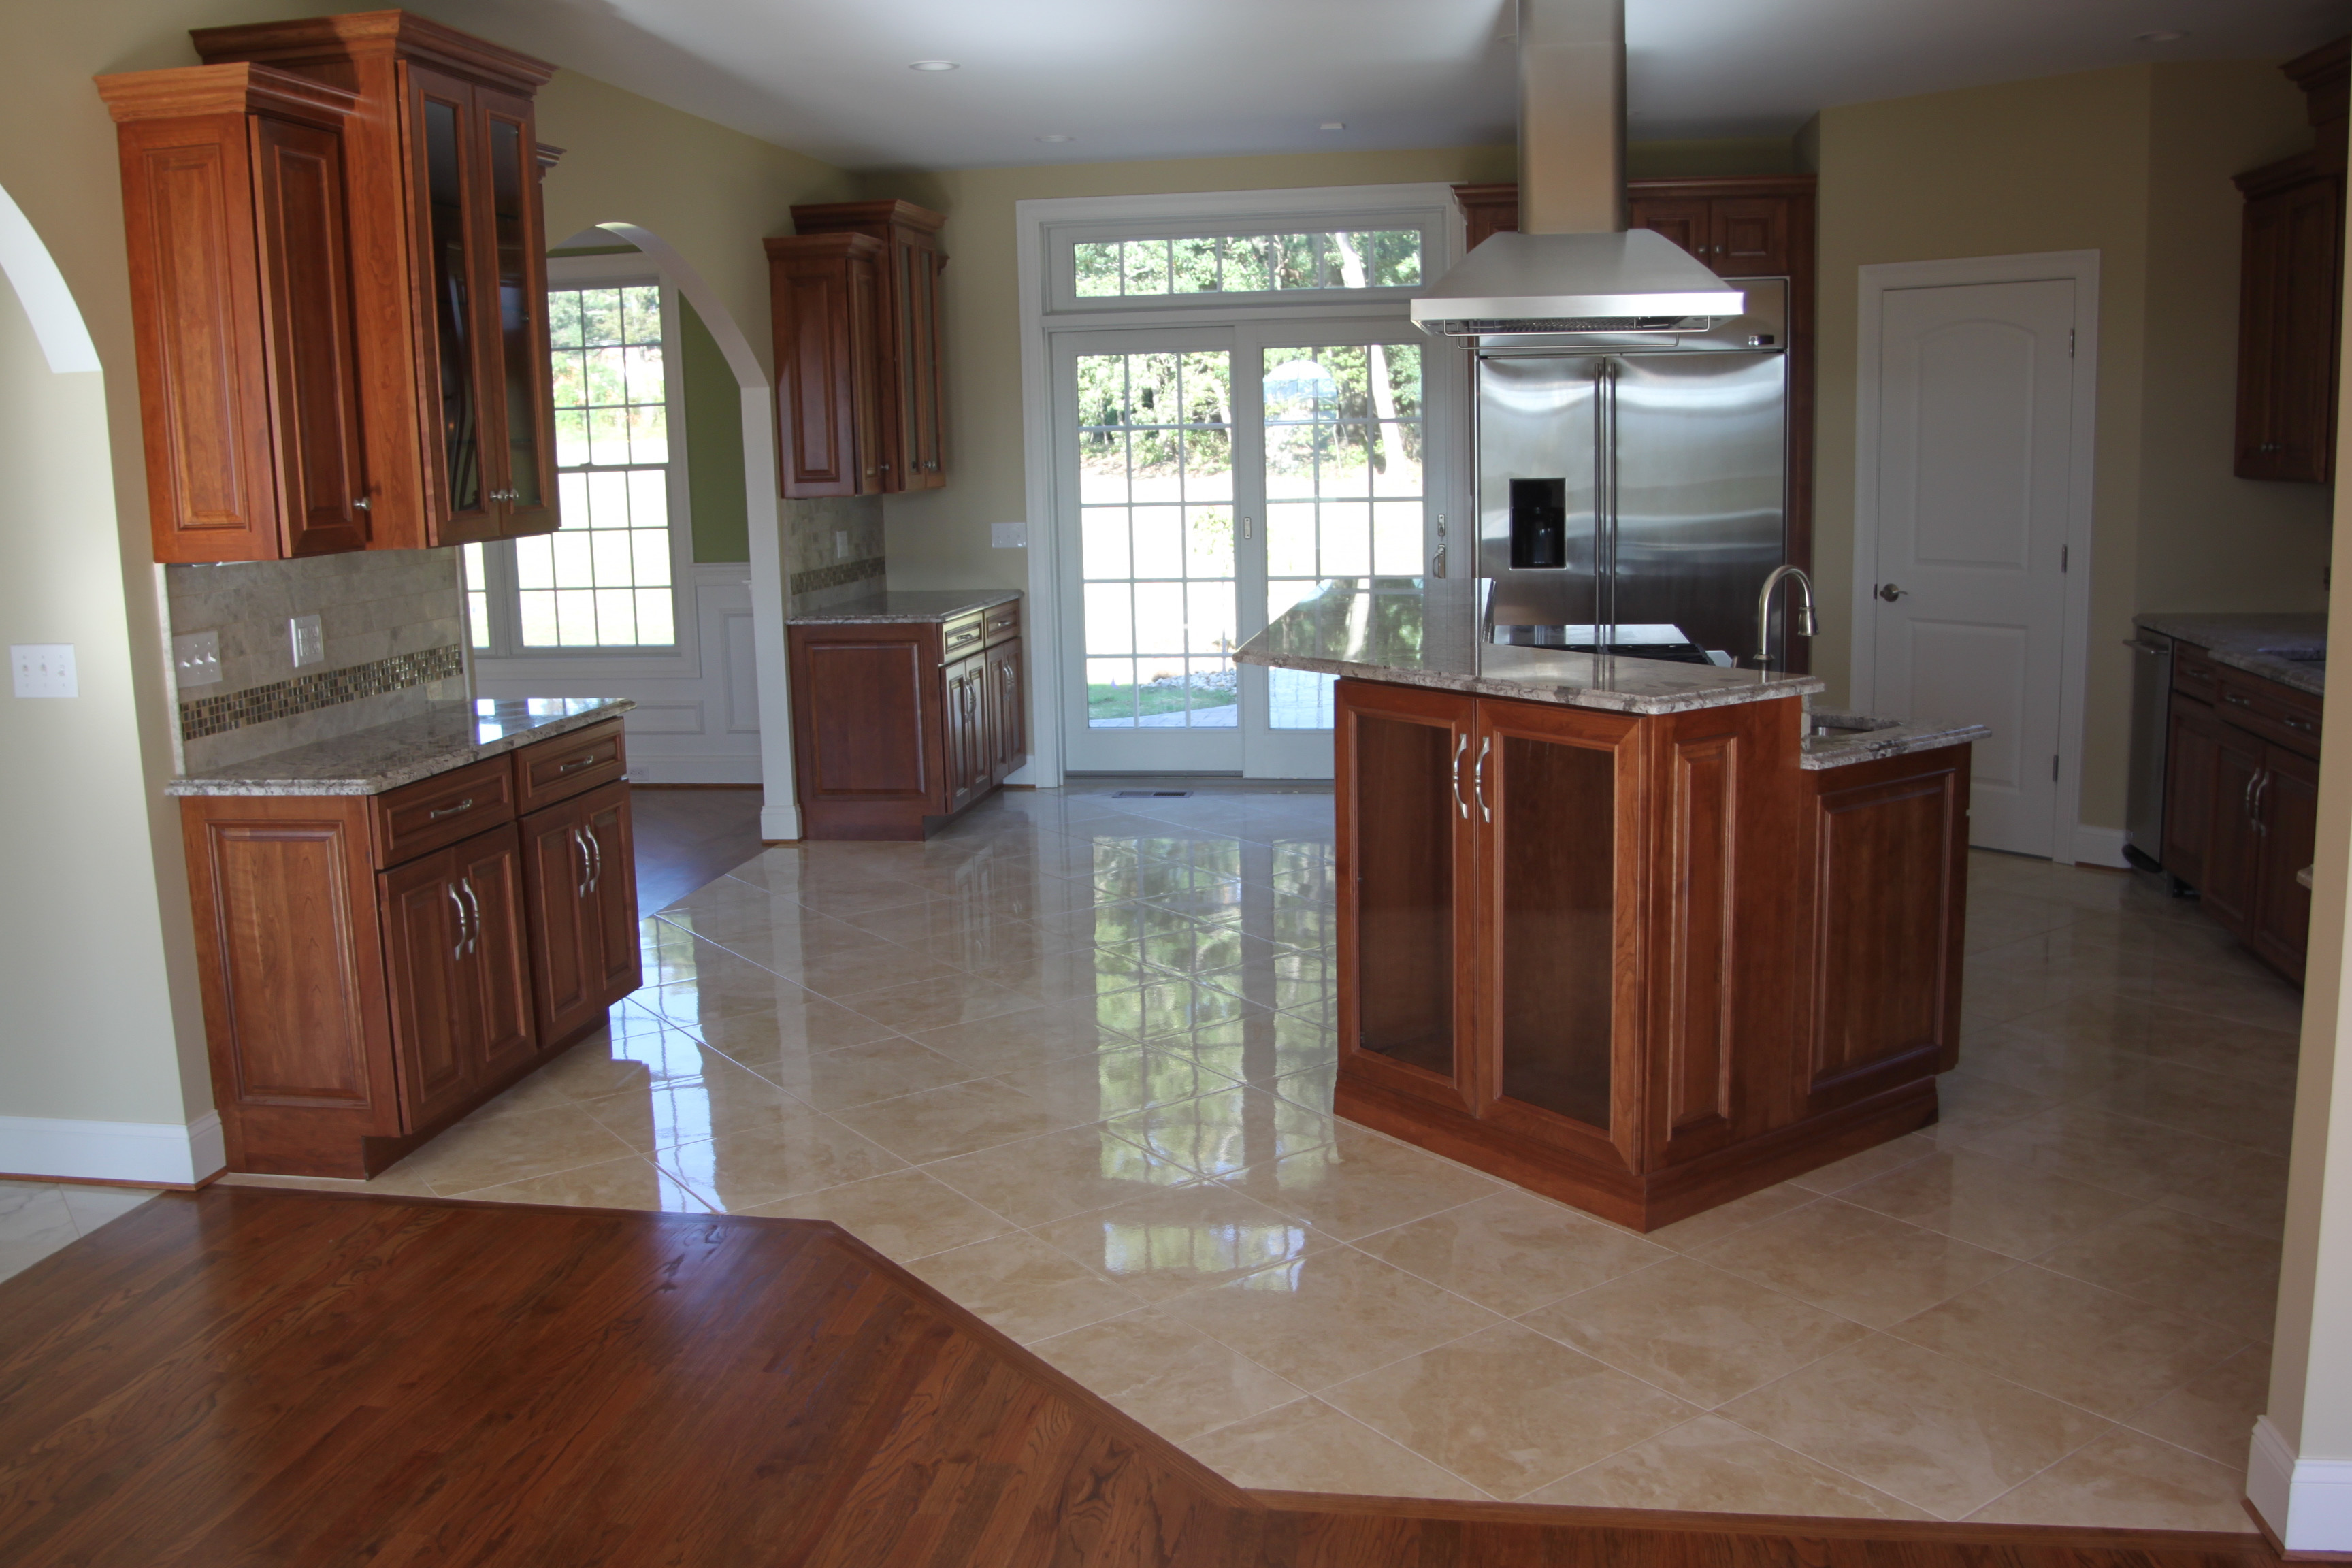 17 Spectacular Mixing Dark and Light Hardwood Floors 2021 free download mixing dark and light hardwood floors of should your flooring match your kitchen cabinets or countertops intended for floor wall tile